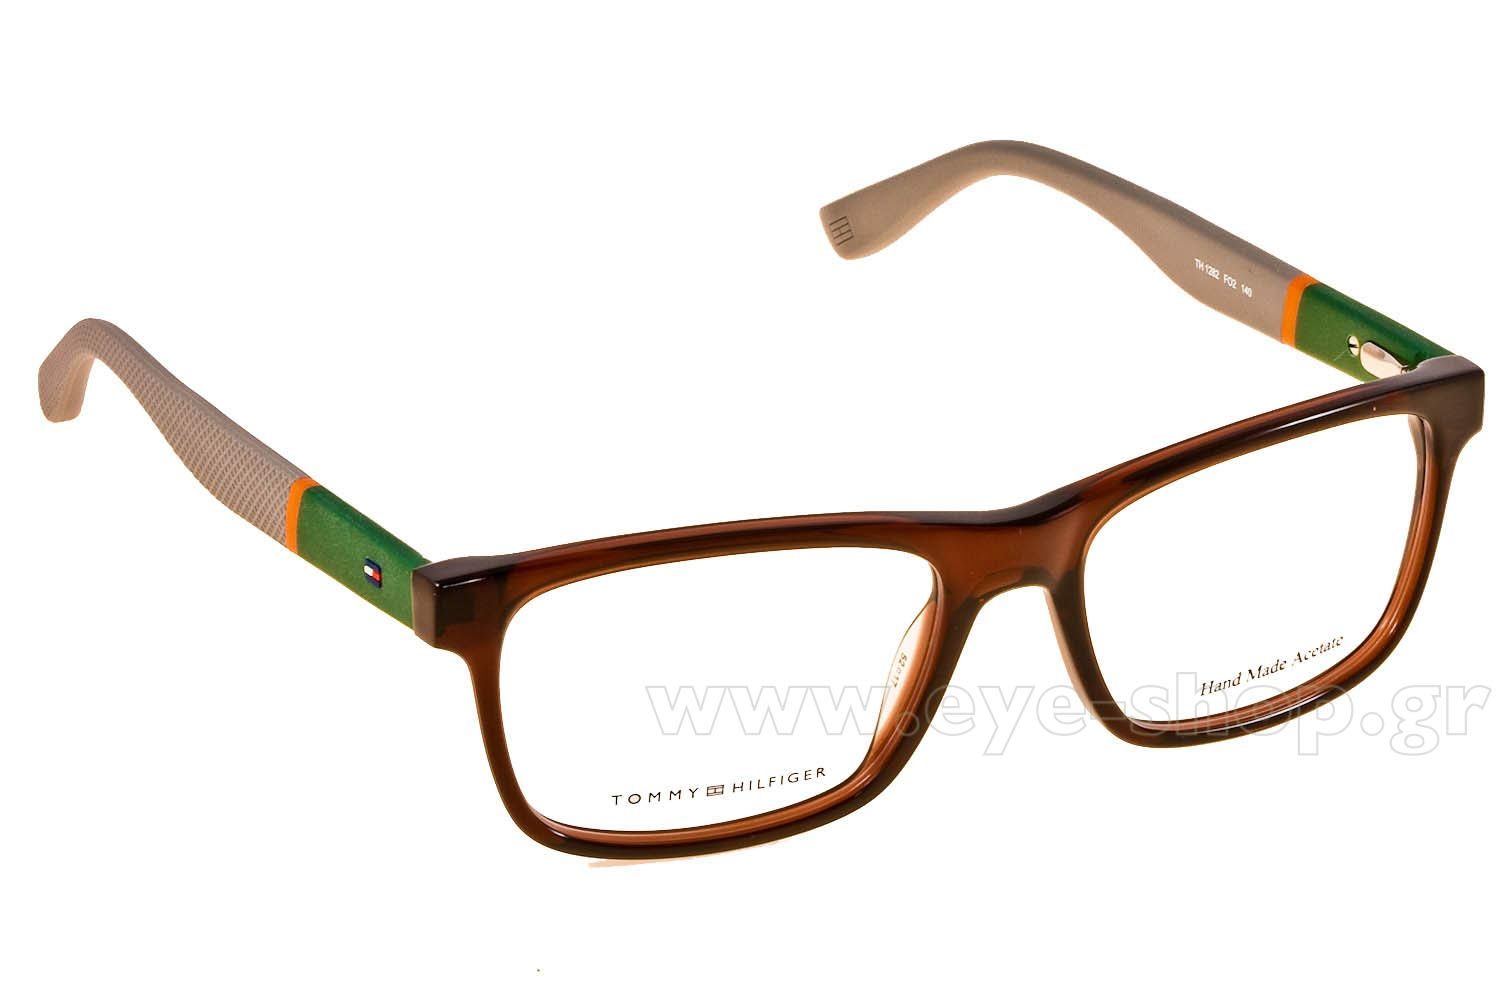 Enlarge Colors OutOfStock · Glasses Tommy Hilfiger TH 1282 ... 92a20a58a80e